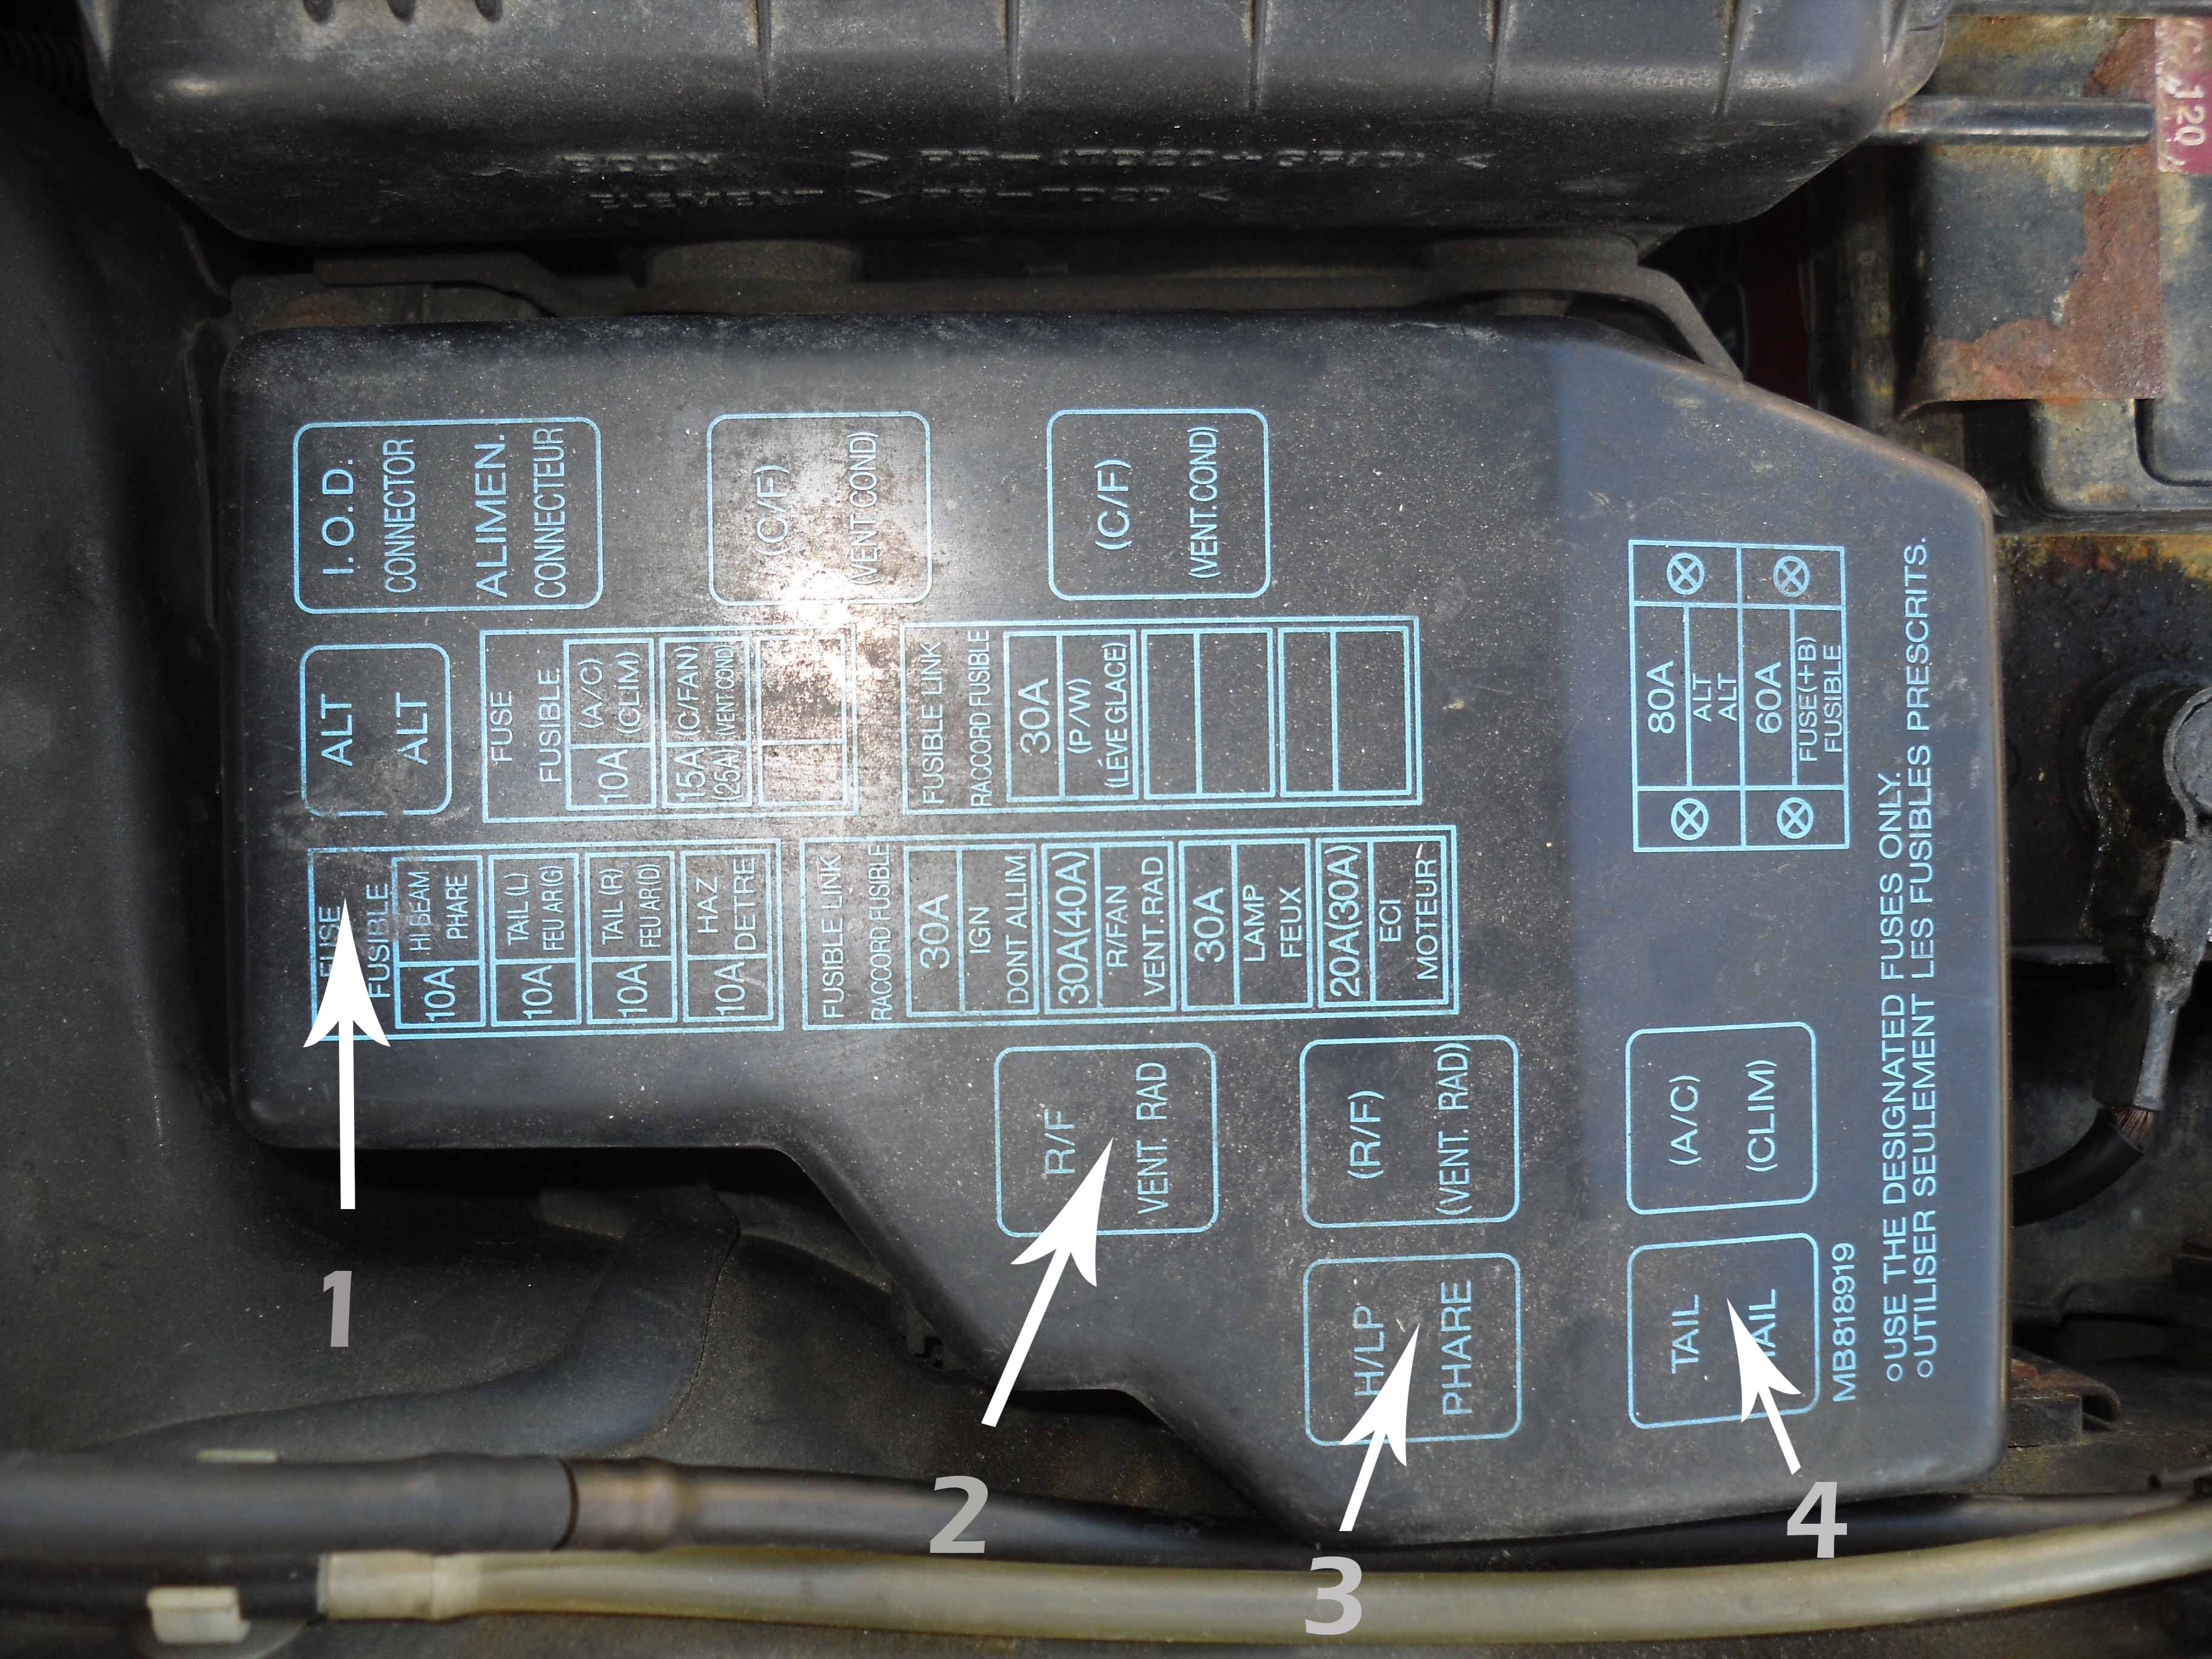 [FPWZ_2684]  Which Relay In The Picture Is For Fuel Pump? | Mitsubishi Forums | Mitsubishi Space Wagon Fuse Box Location |  | Mitsubishi Forums